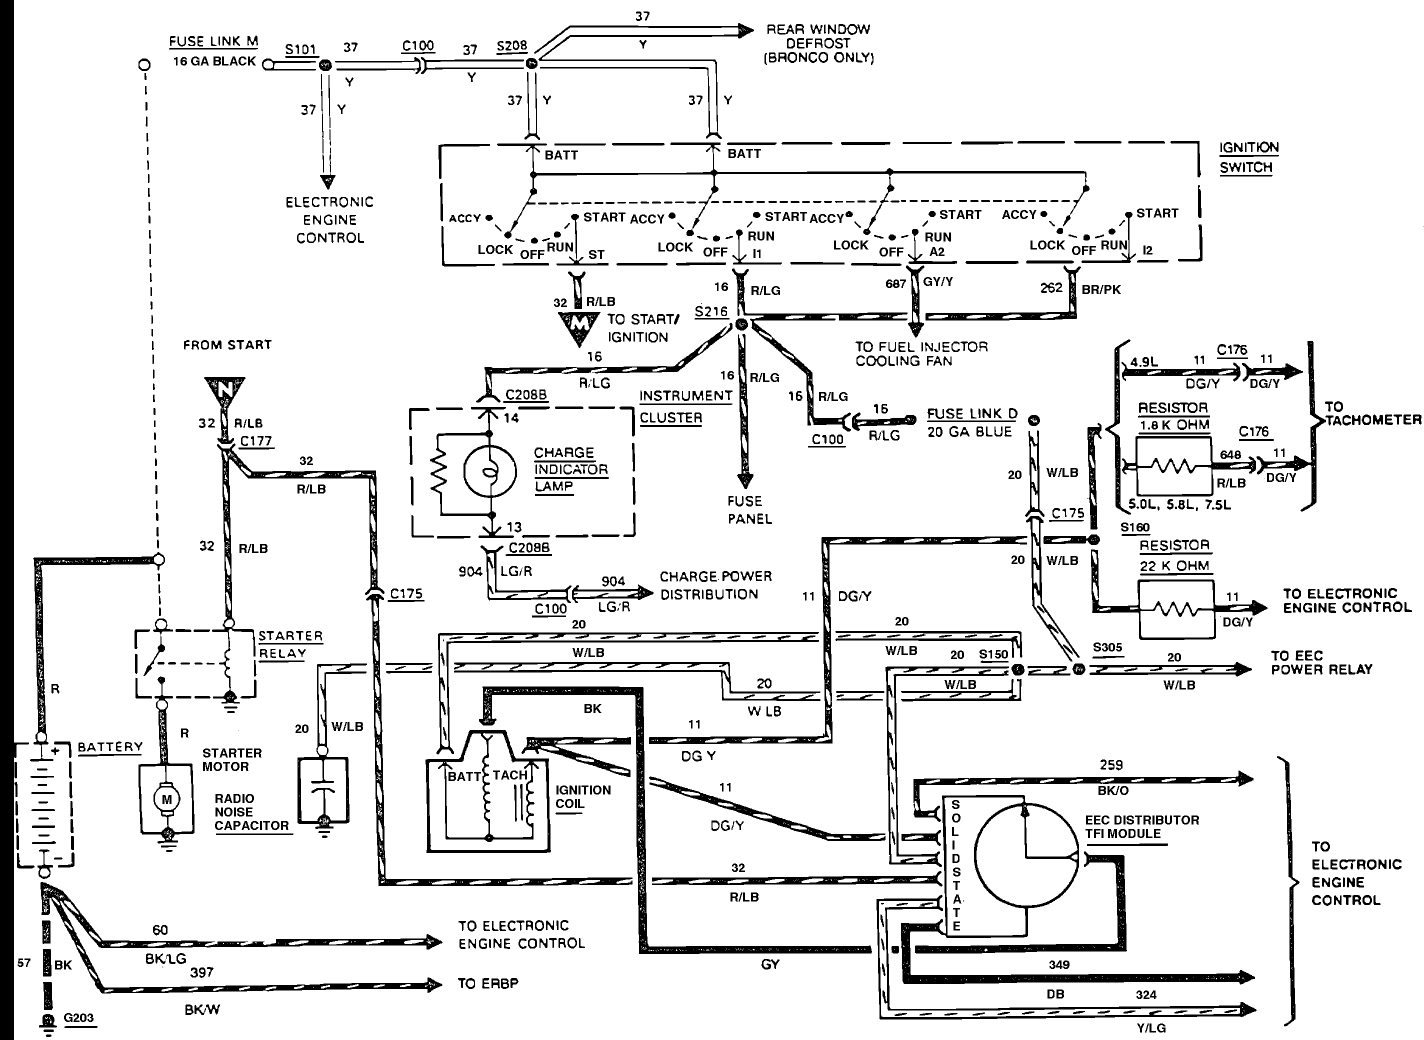 Ignition Wiring Diagram For 1996 Ford F 150 - X Axis Motor Wire Diagram for  Wiring Diagram SchematicsWiring Diagram Schematics